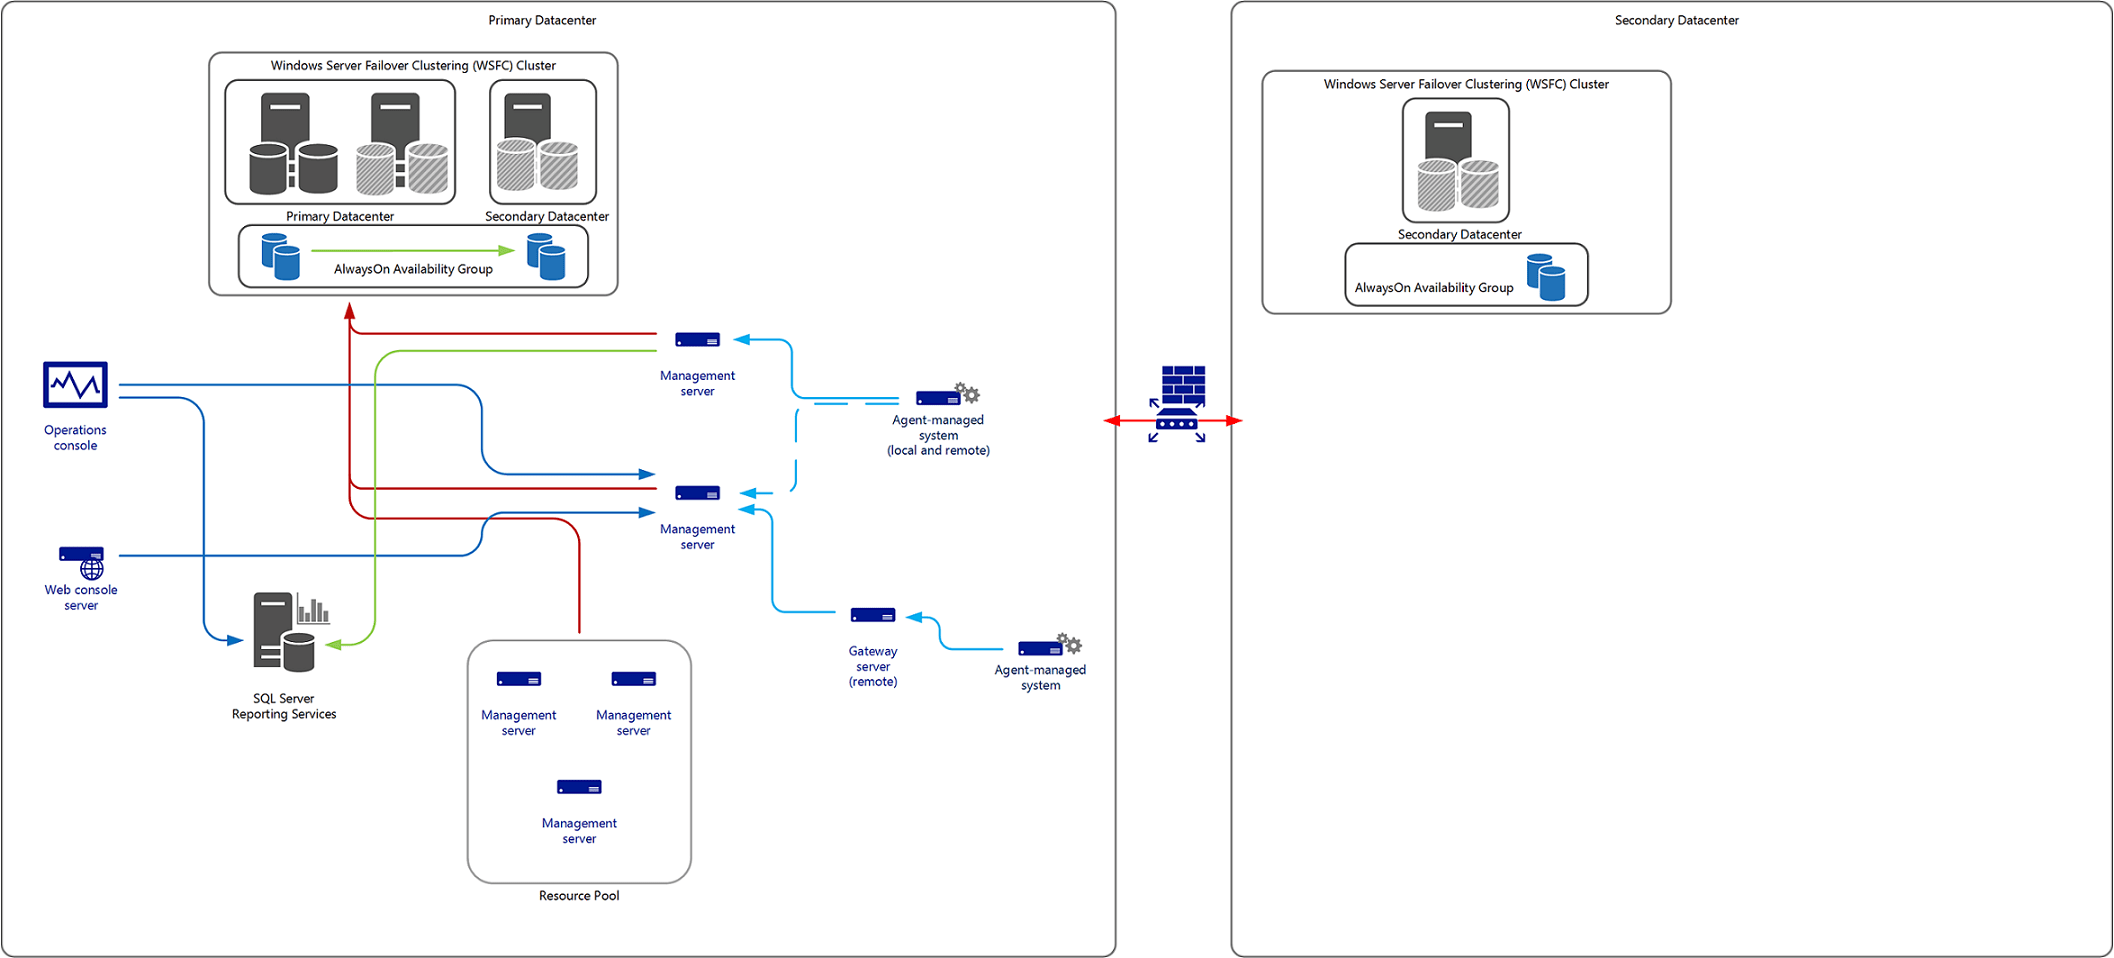 sccm deployment diagram 1969 dodge charger dash wiring designing for high availability and disaster recovery